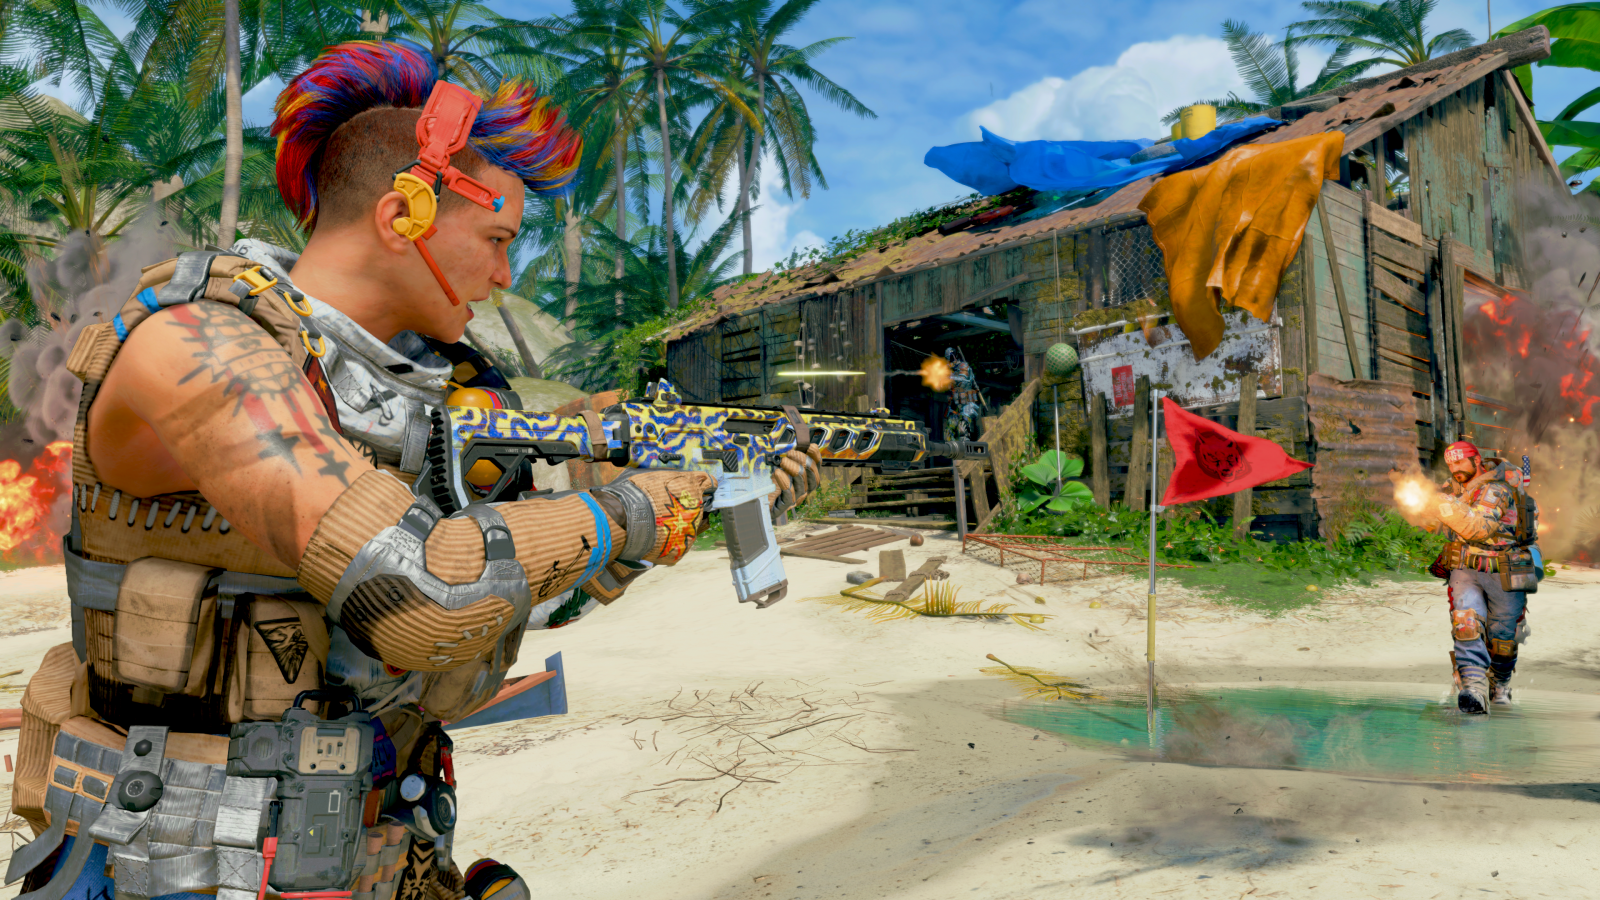 Call of Duty: Black Ops 4' Update 1 18 Adds Days of Summer